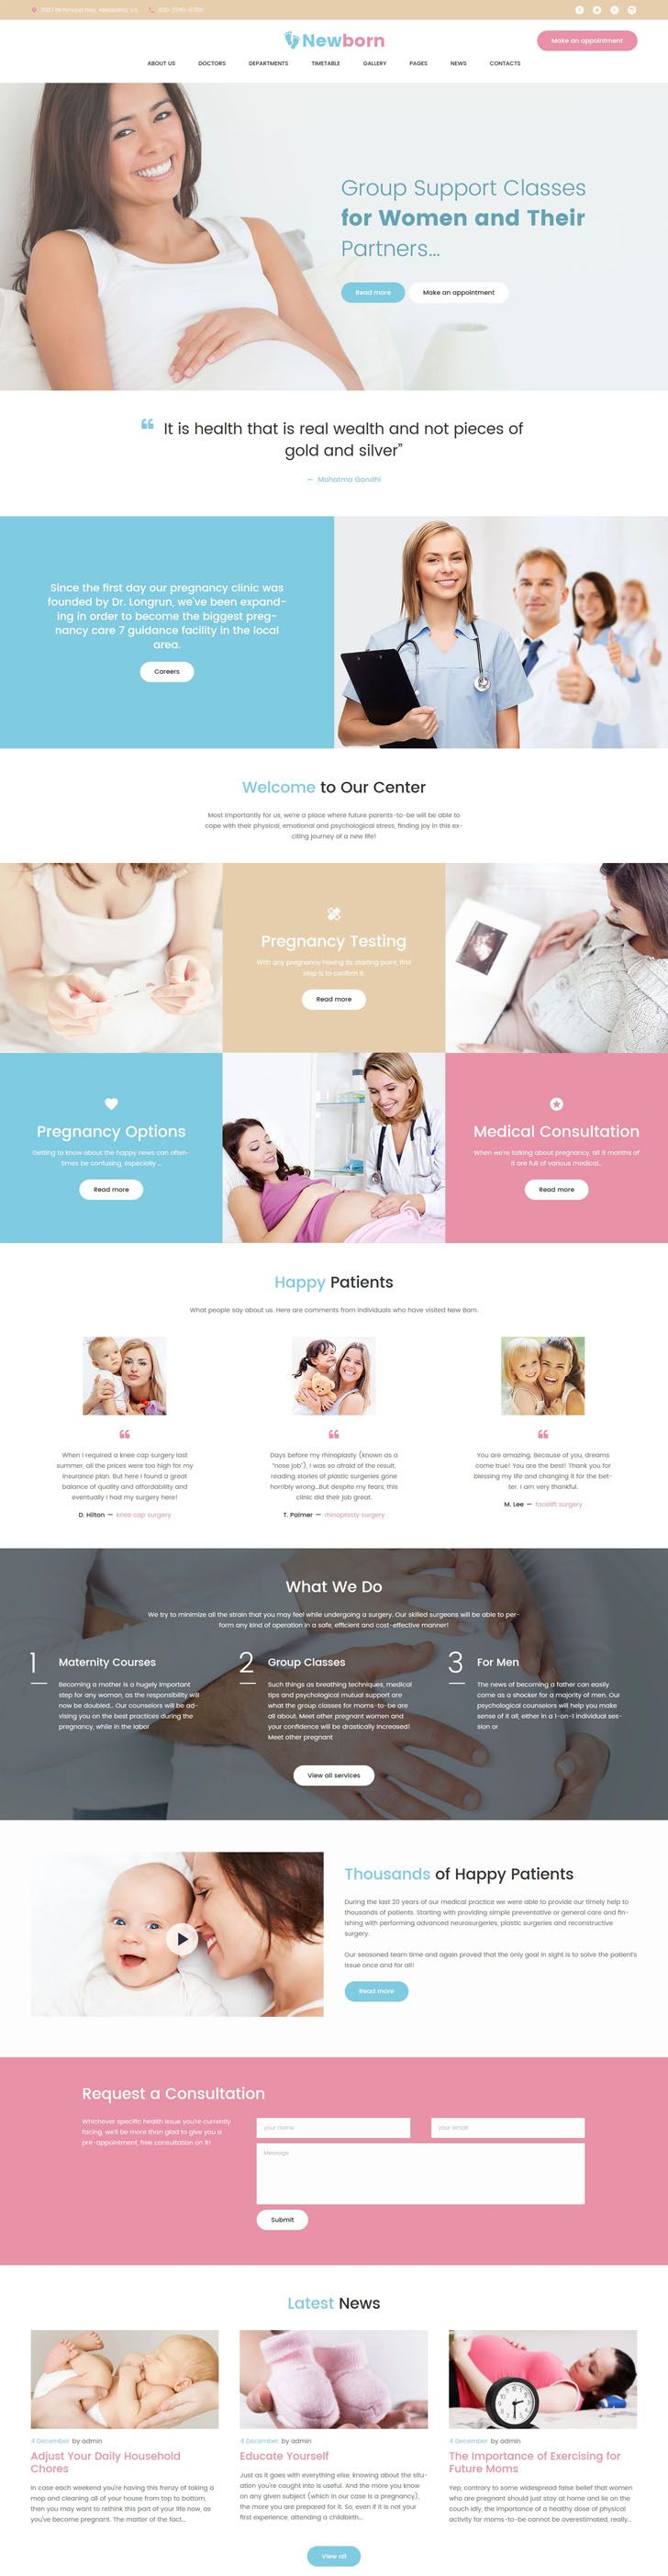 #Pregnancy #Support #Center #WordPress #Theme.Newborn is a well-documented and fully editable Pregnancy WordPress Theme, manufactured for medical websites. Showcase your customers how your pregnancy center works with a major TM Gallery that allows you create an awesome portfolio. Let them be up-to-date to the schedule of the maternity courses, pregnancy testing, and group support with timetable and allow your clients to make a request for a consultation directly on the main page